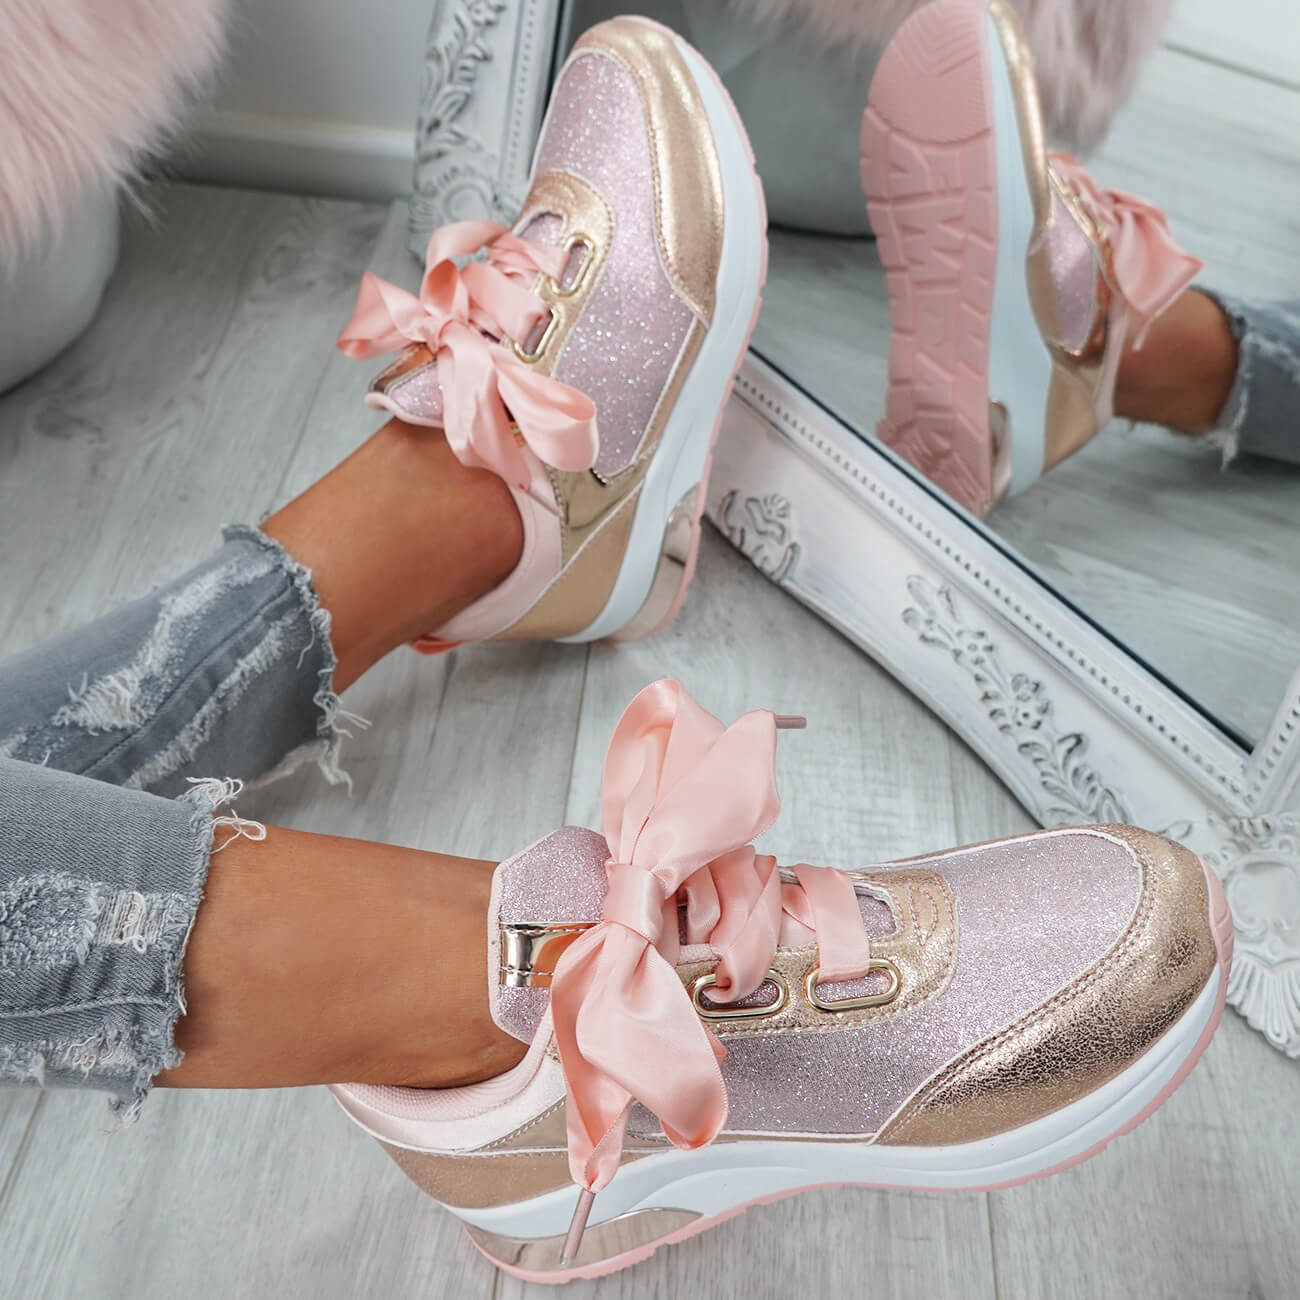 WOMENS-LADIES-RIBBON-TRAINERS-GLITTER-SPARKLE-SNEAKERS-RUNNING-FASHION-SHOES thumbnail 15